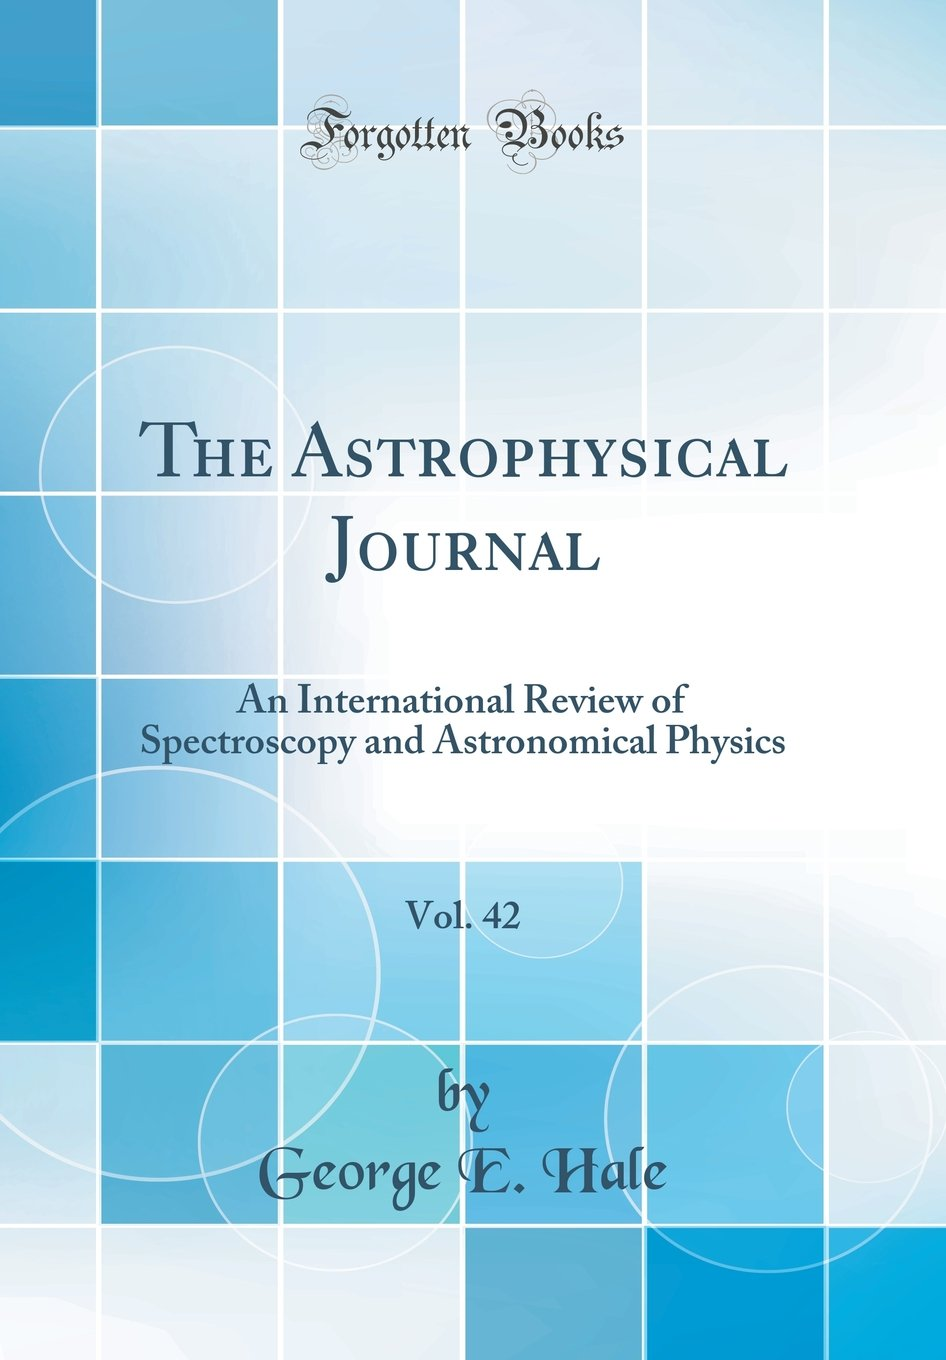 Download The Astrophysical Journal, Vol. 42: An International Review of Spectroscopy and Astronomical Physics (Classic Reprint) pdf